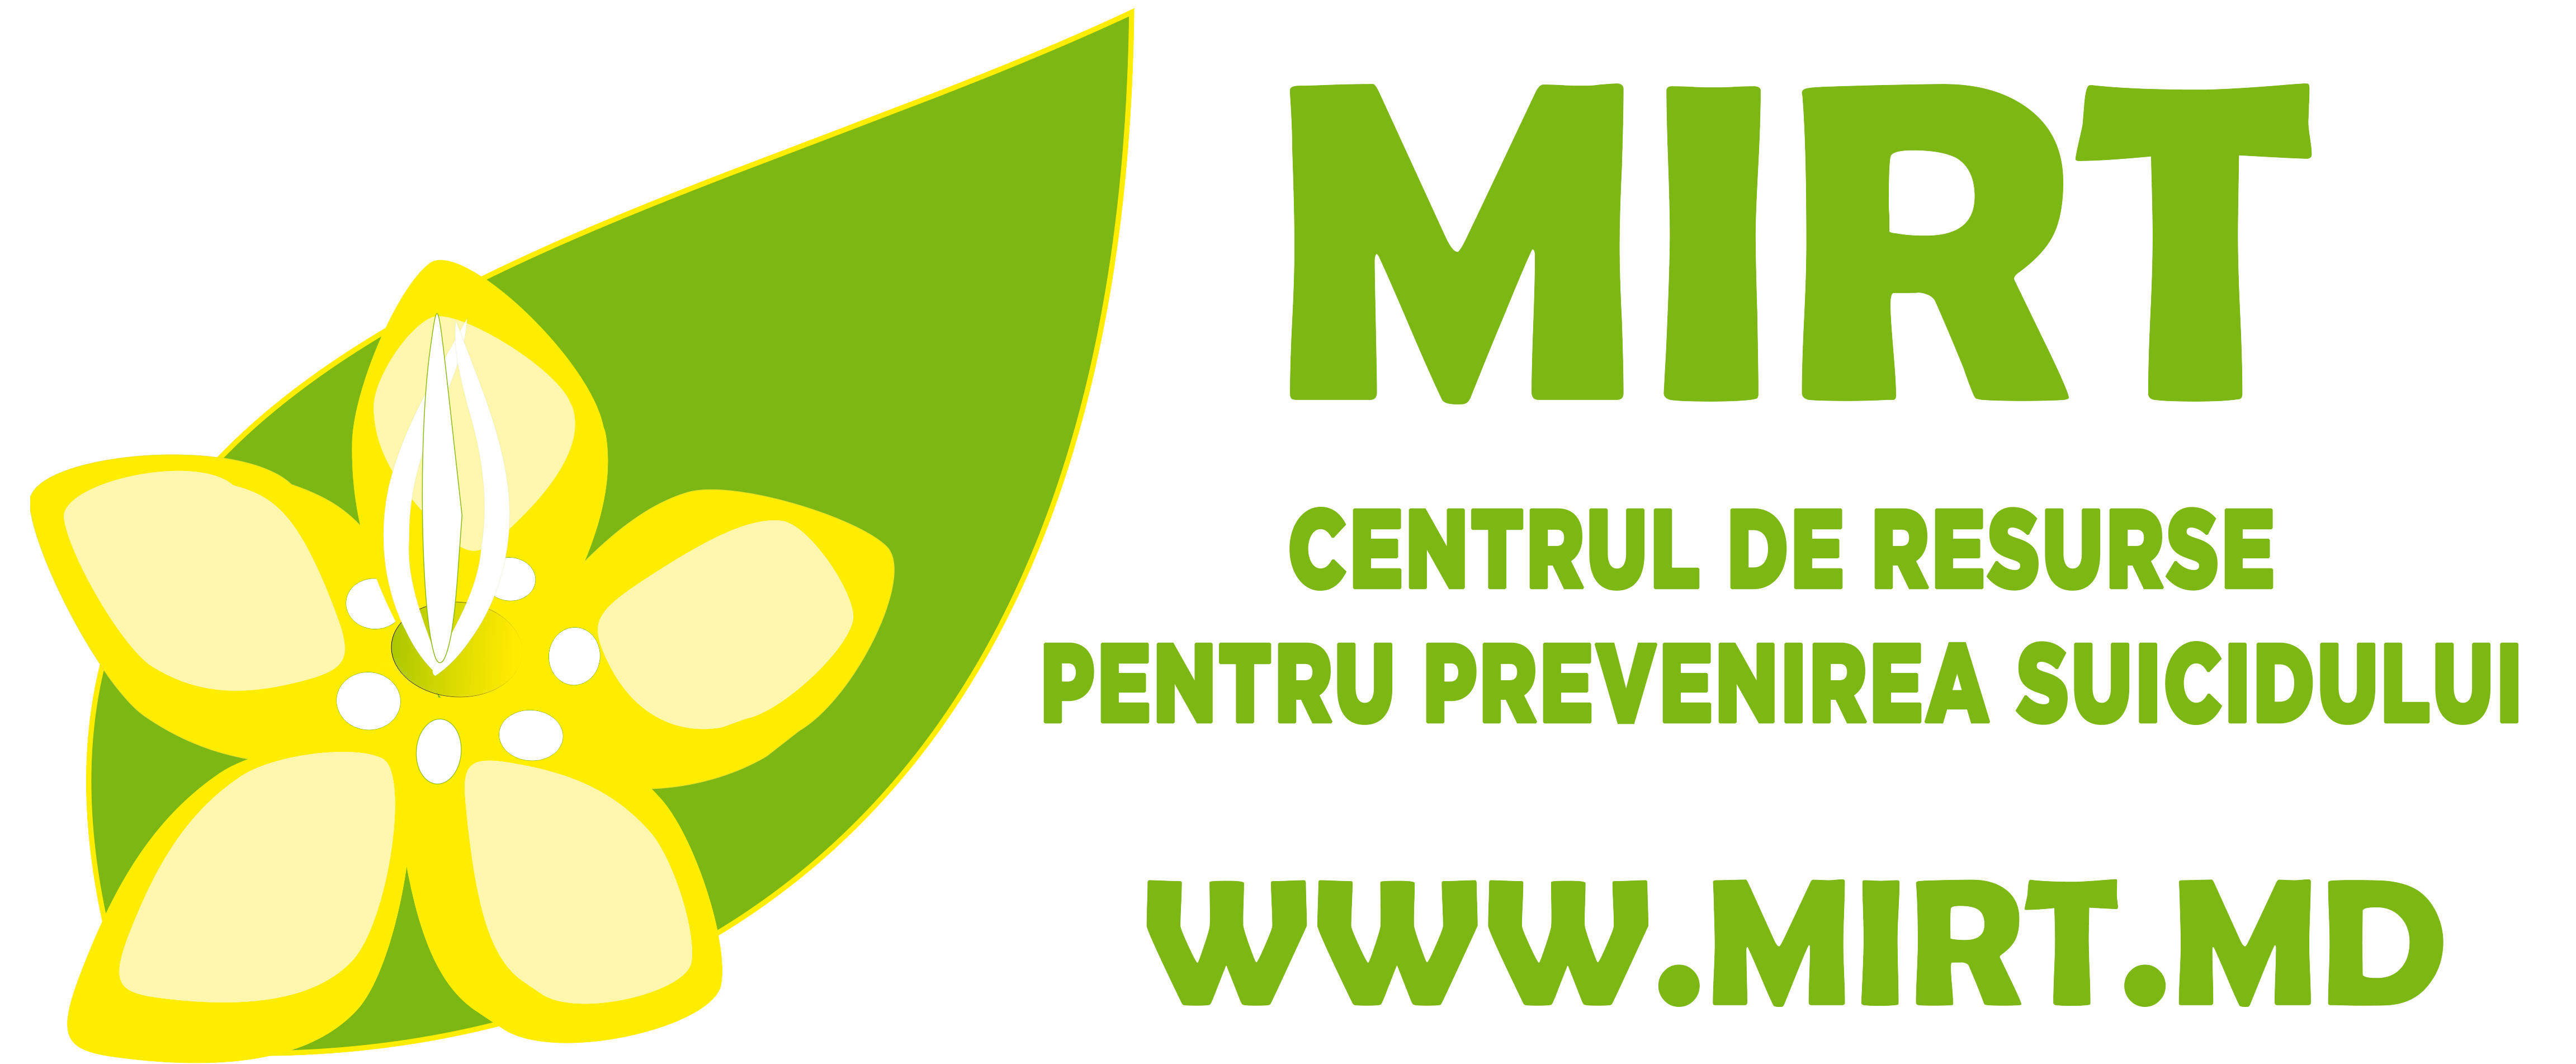 mirt full logo new green